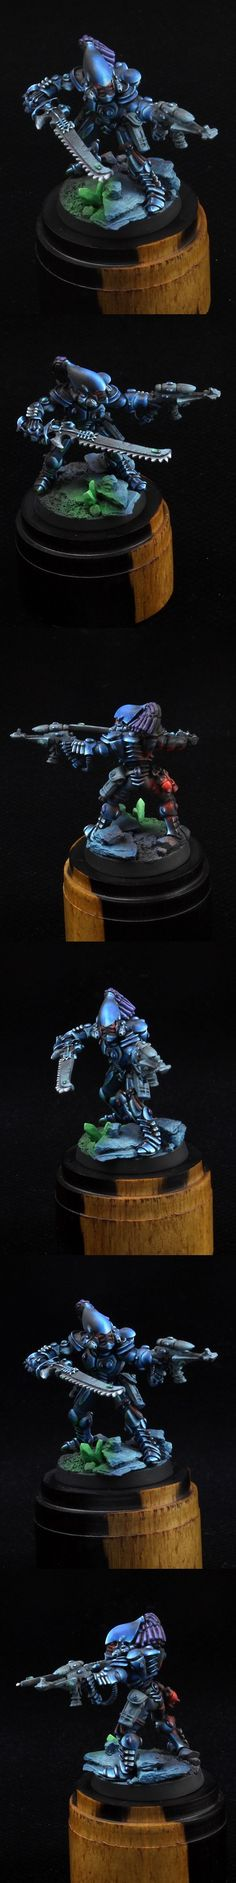 Eldar Striking Scorpions Aspect Warrior - great OLS . Check out the eyes!